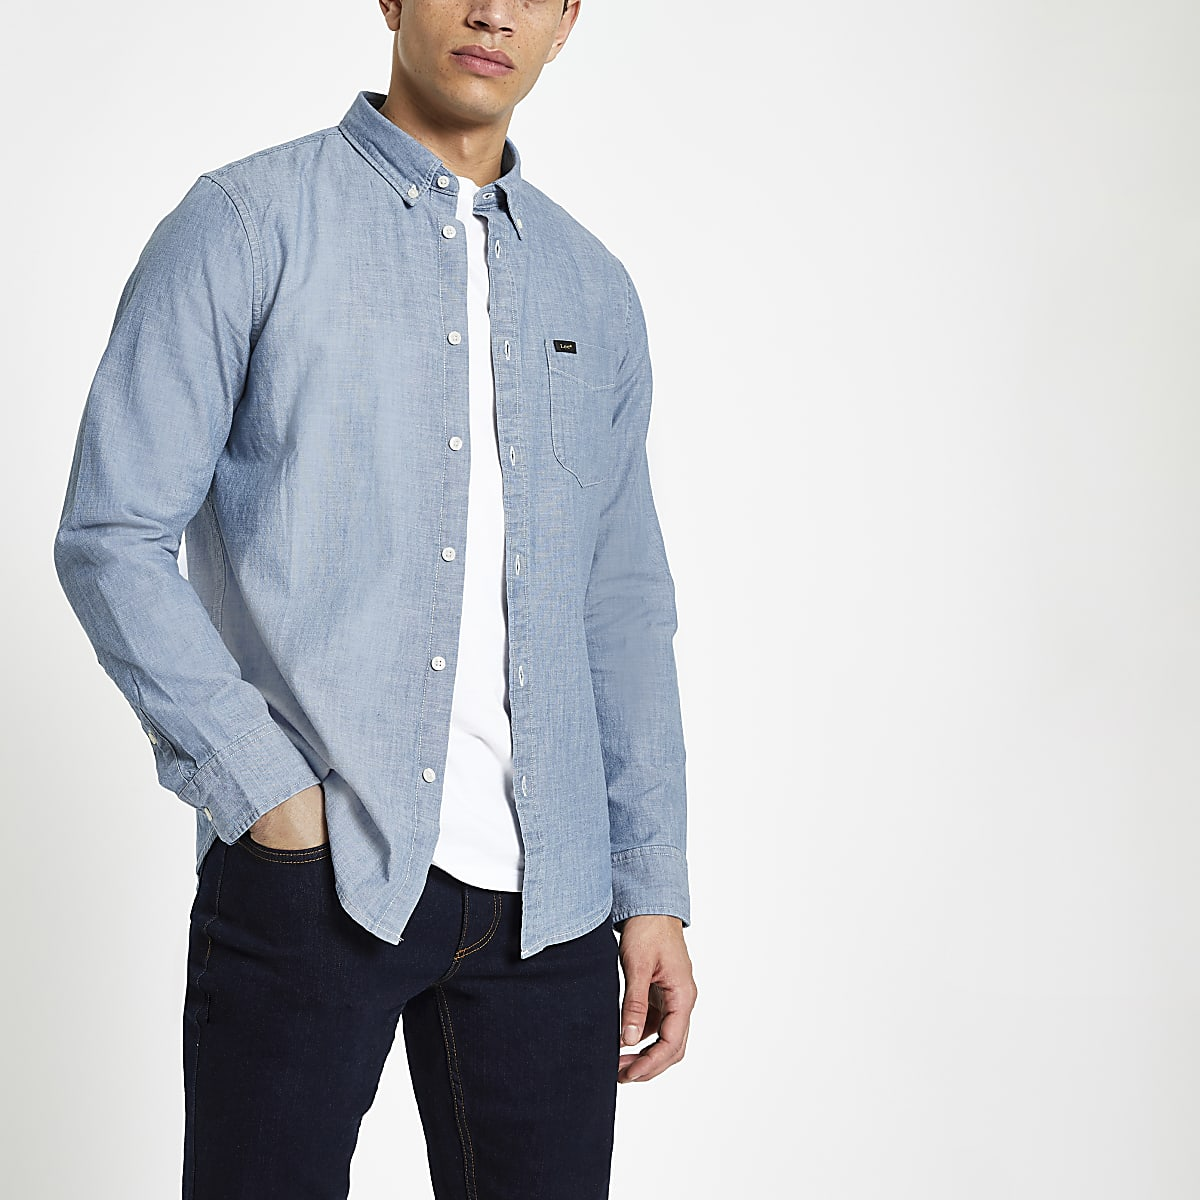 Lee light blue regular fitdenim shirt